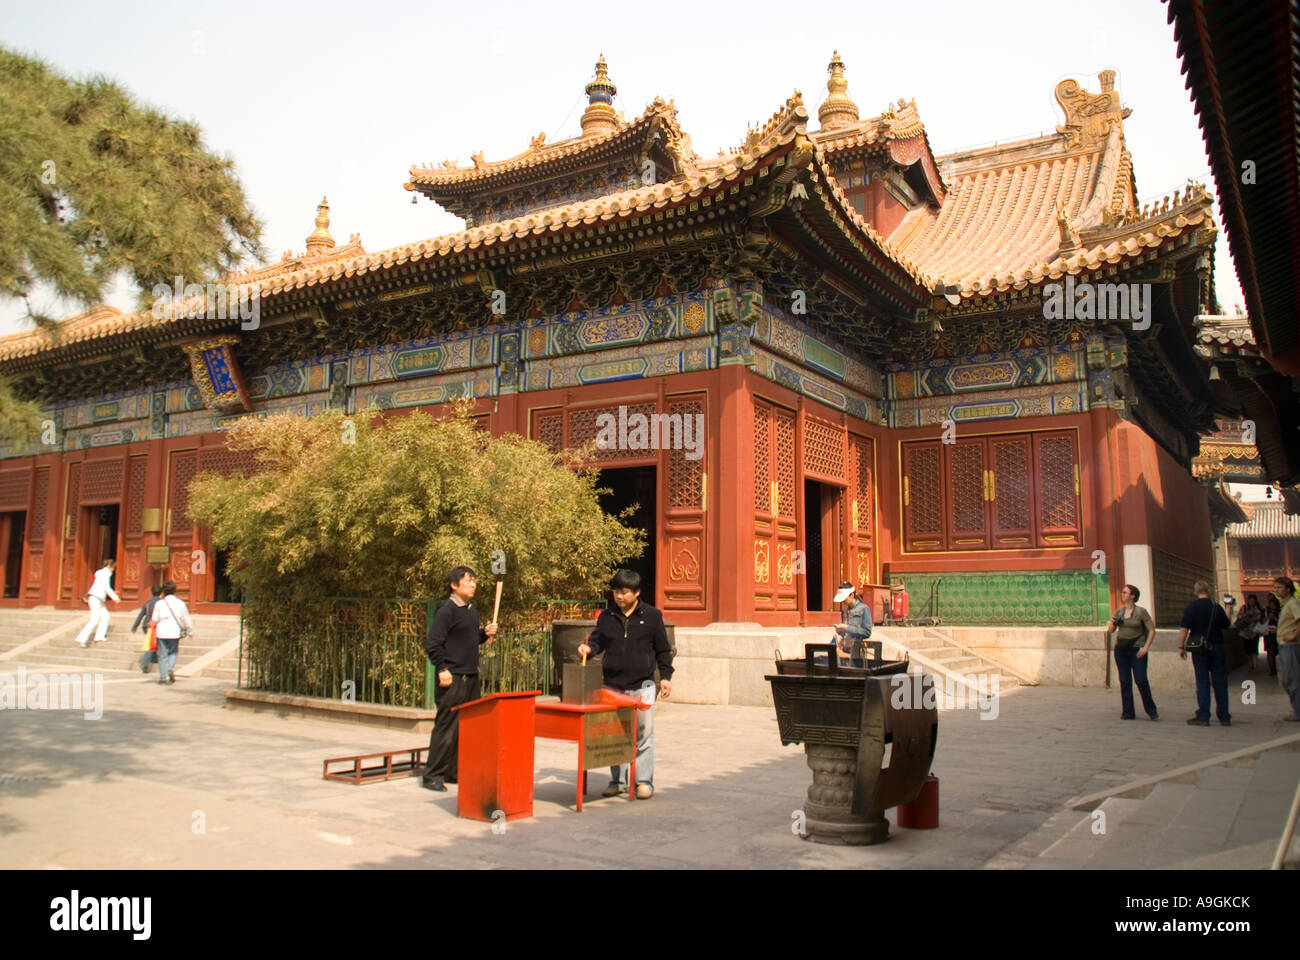 The Lama Temple (Yonghe Gong) Hall of the Wheel of Law Falun Dian, Beijing - Stock Image